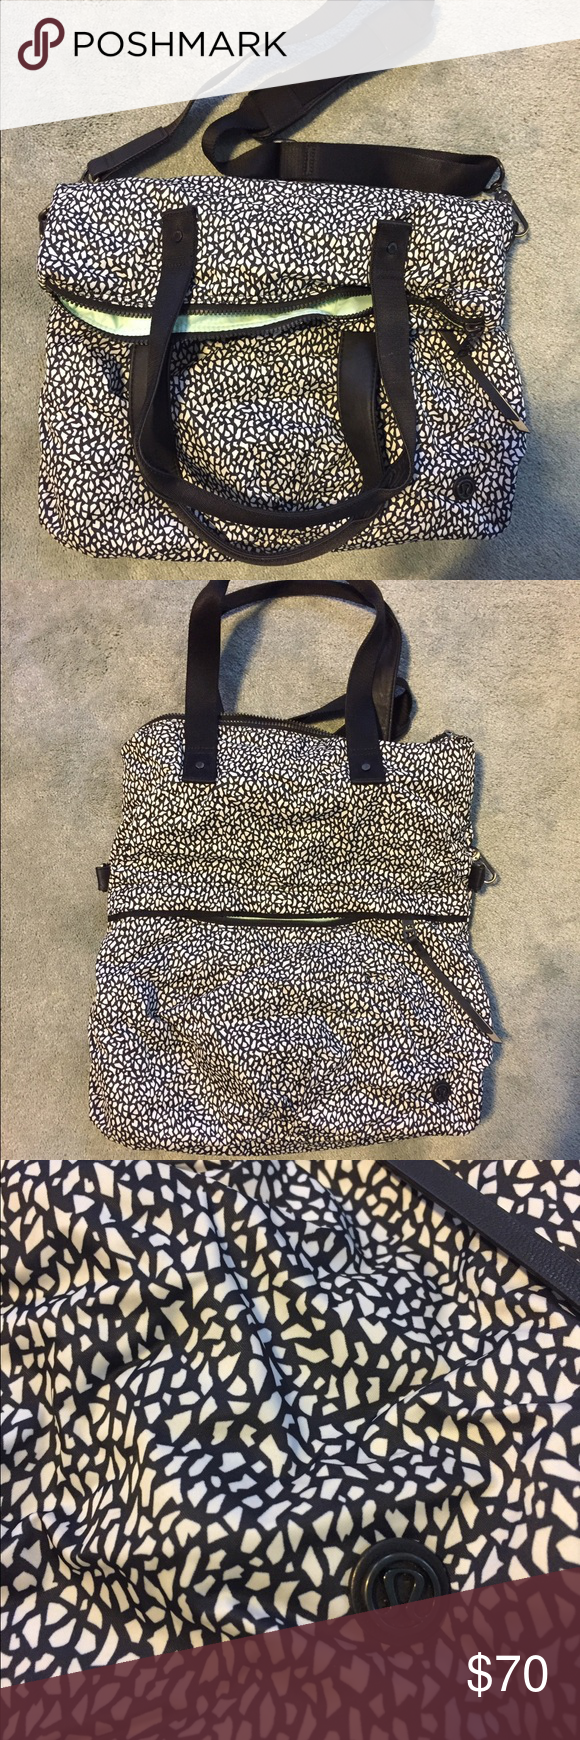 90fad66c7e lululemon twice as nice tote 2 in 1 convertible bag. Cross body strap  detaches.